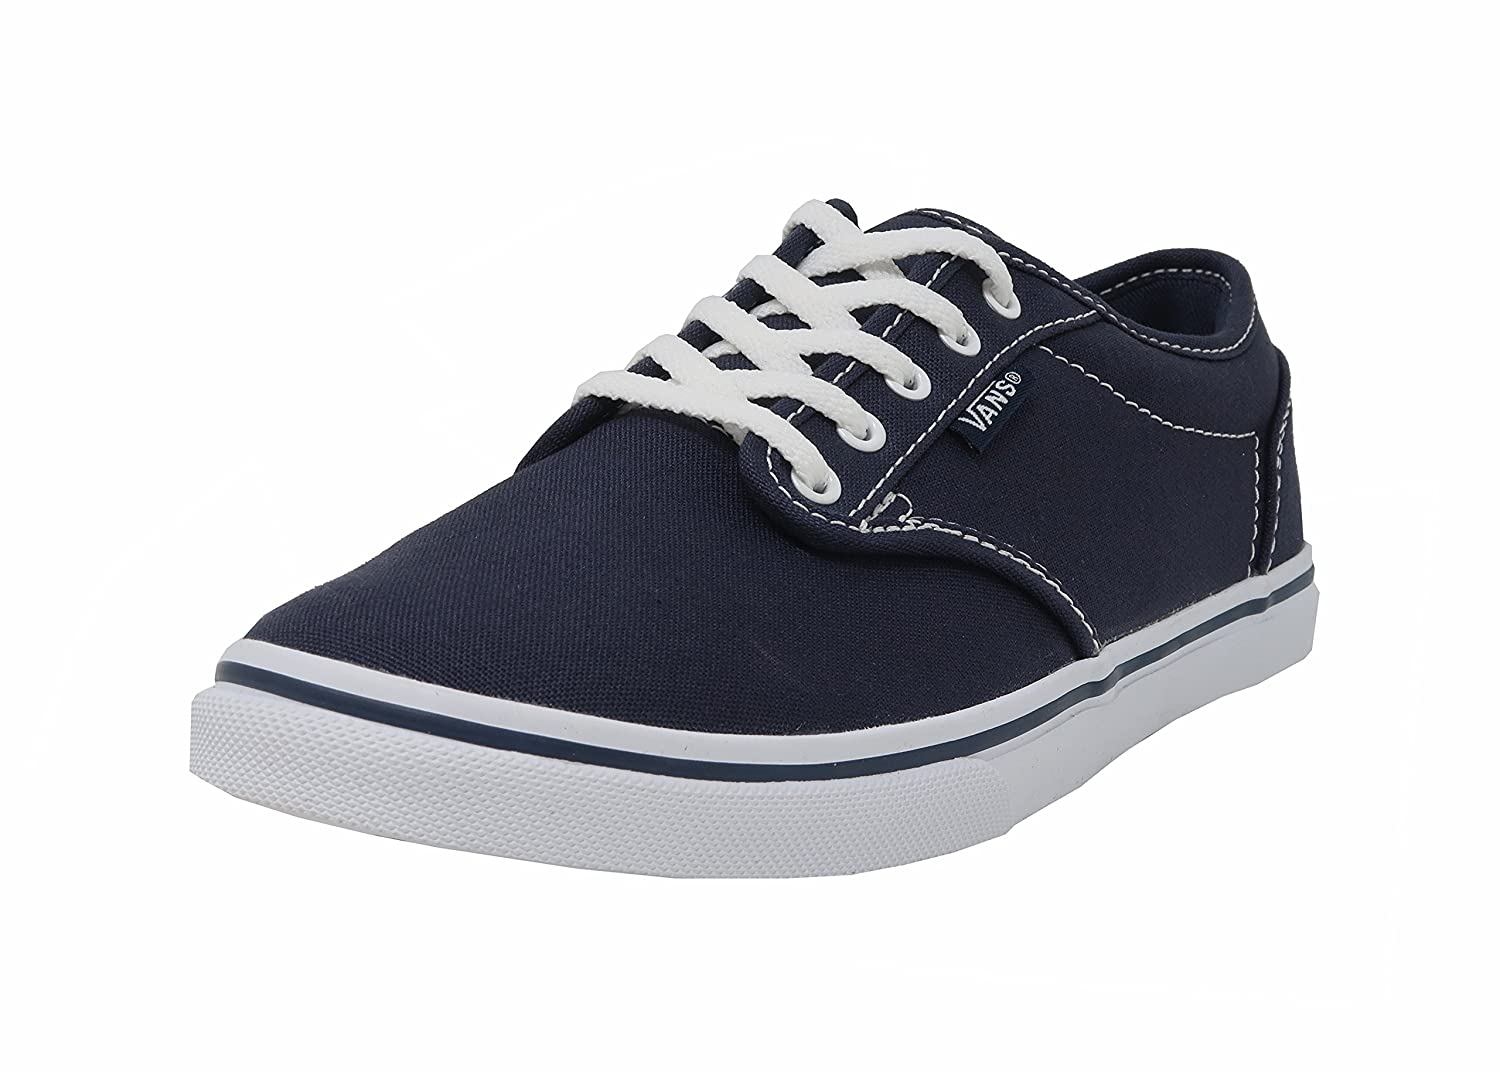 5a546c67d5ff Vans Vans Vans Women s Atwood Low Fashion Sneakers Shoes B01MR7FX5K 6.5  B(M) US